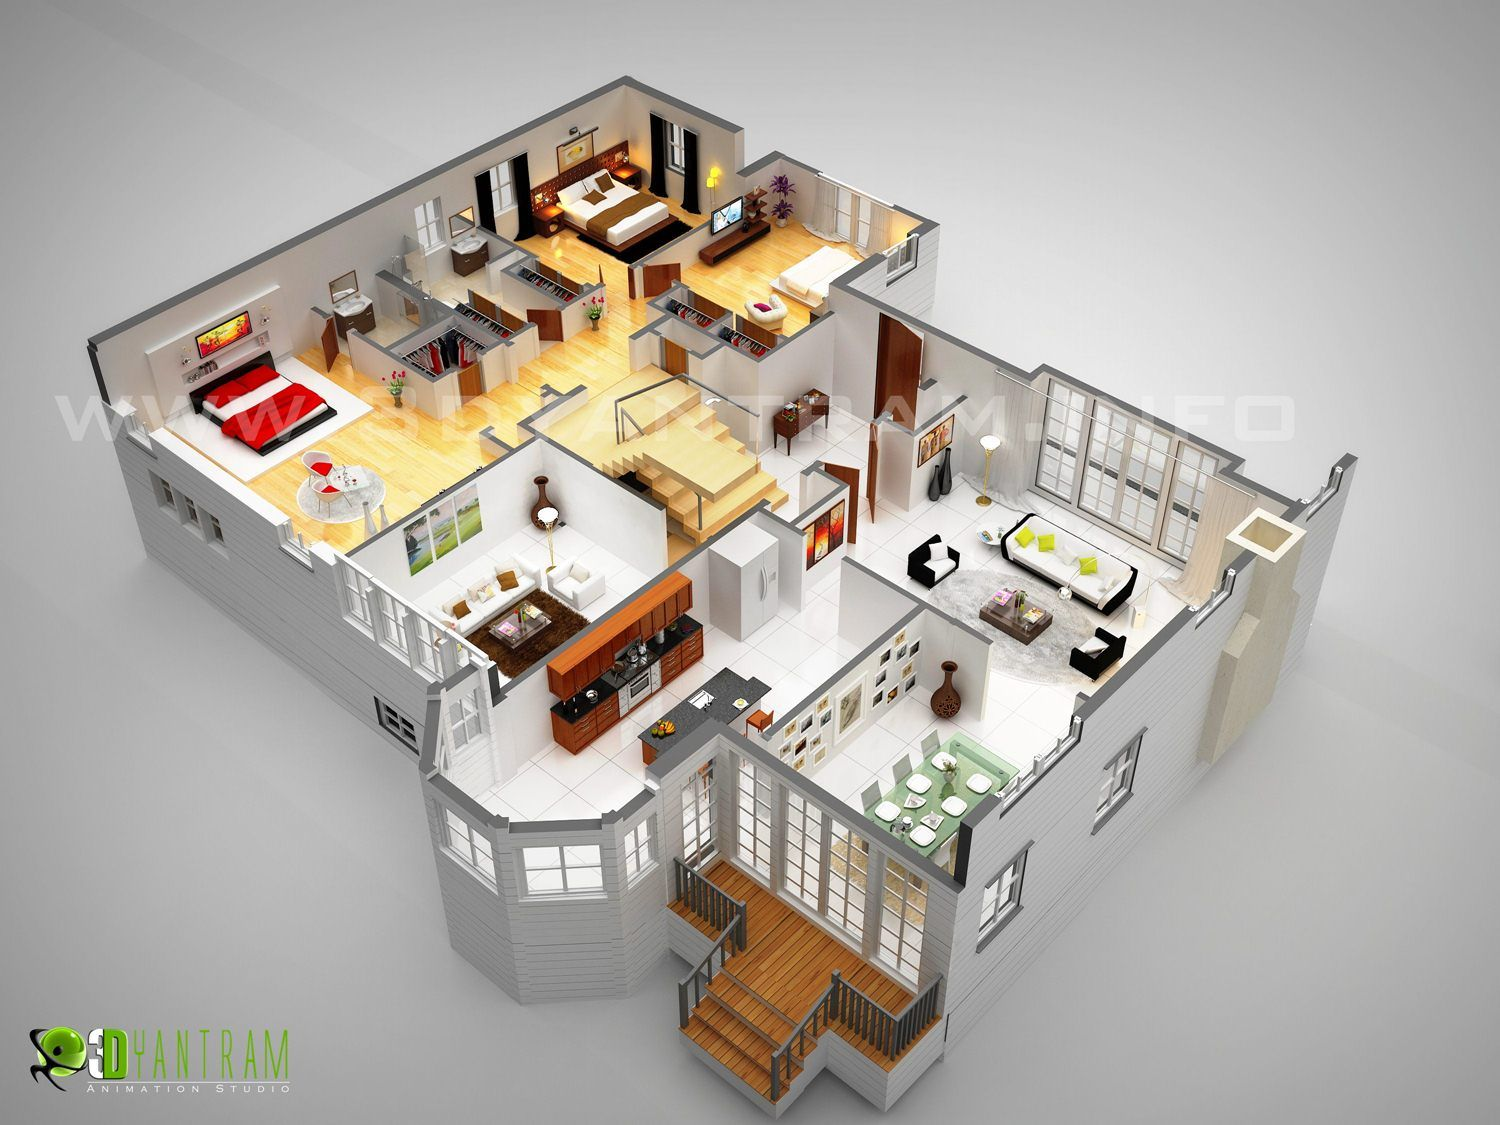 Laxurious residential 3d floor plan paris sims pinterest 3d house and sims Plan your house 3d